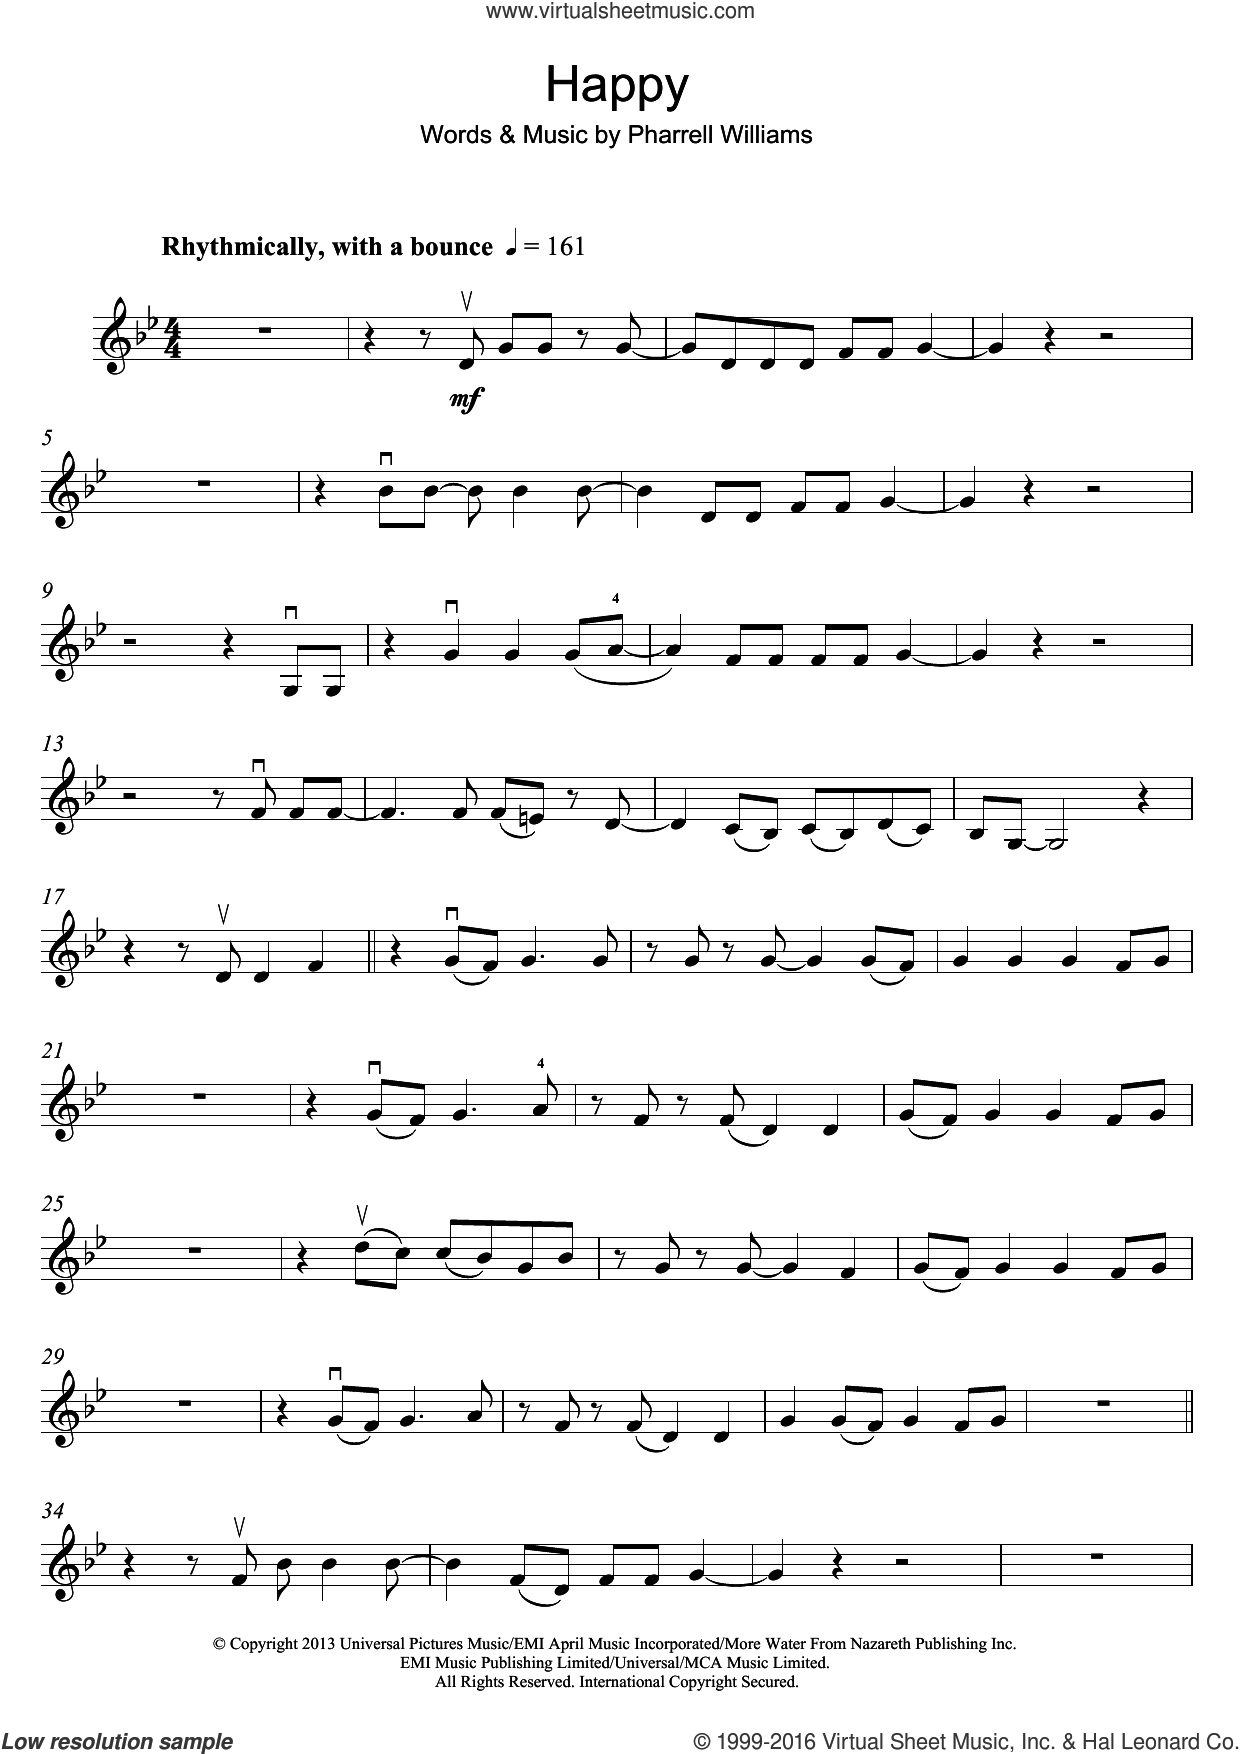 Happy sheet music for violin solo by Pharrell Williams, intermediate skill level